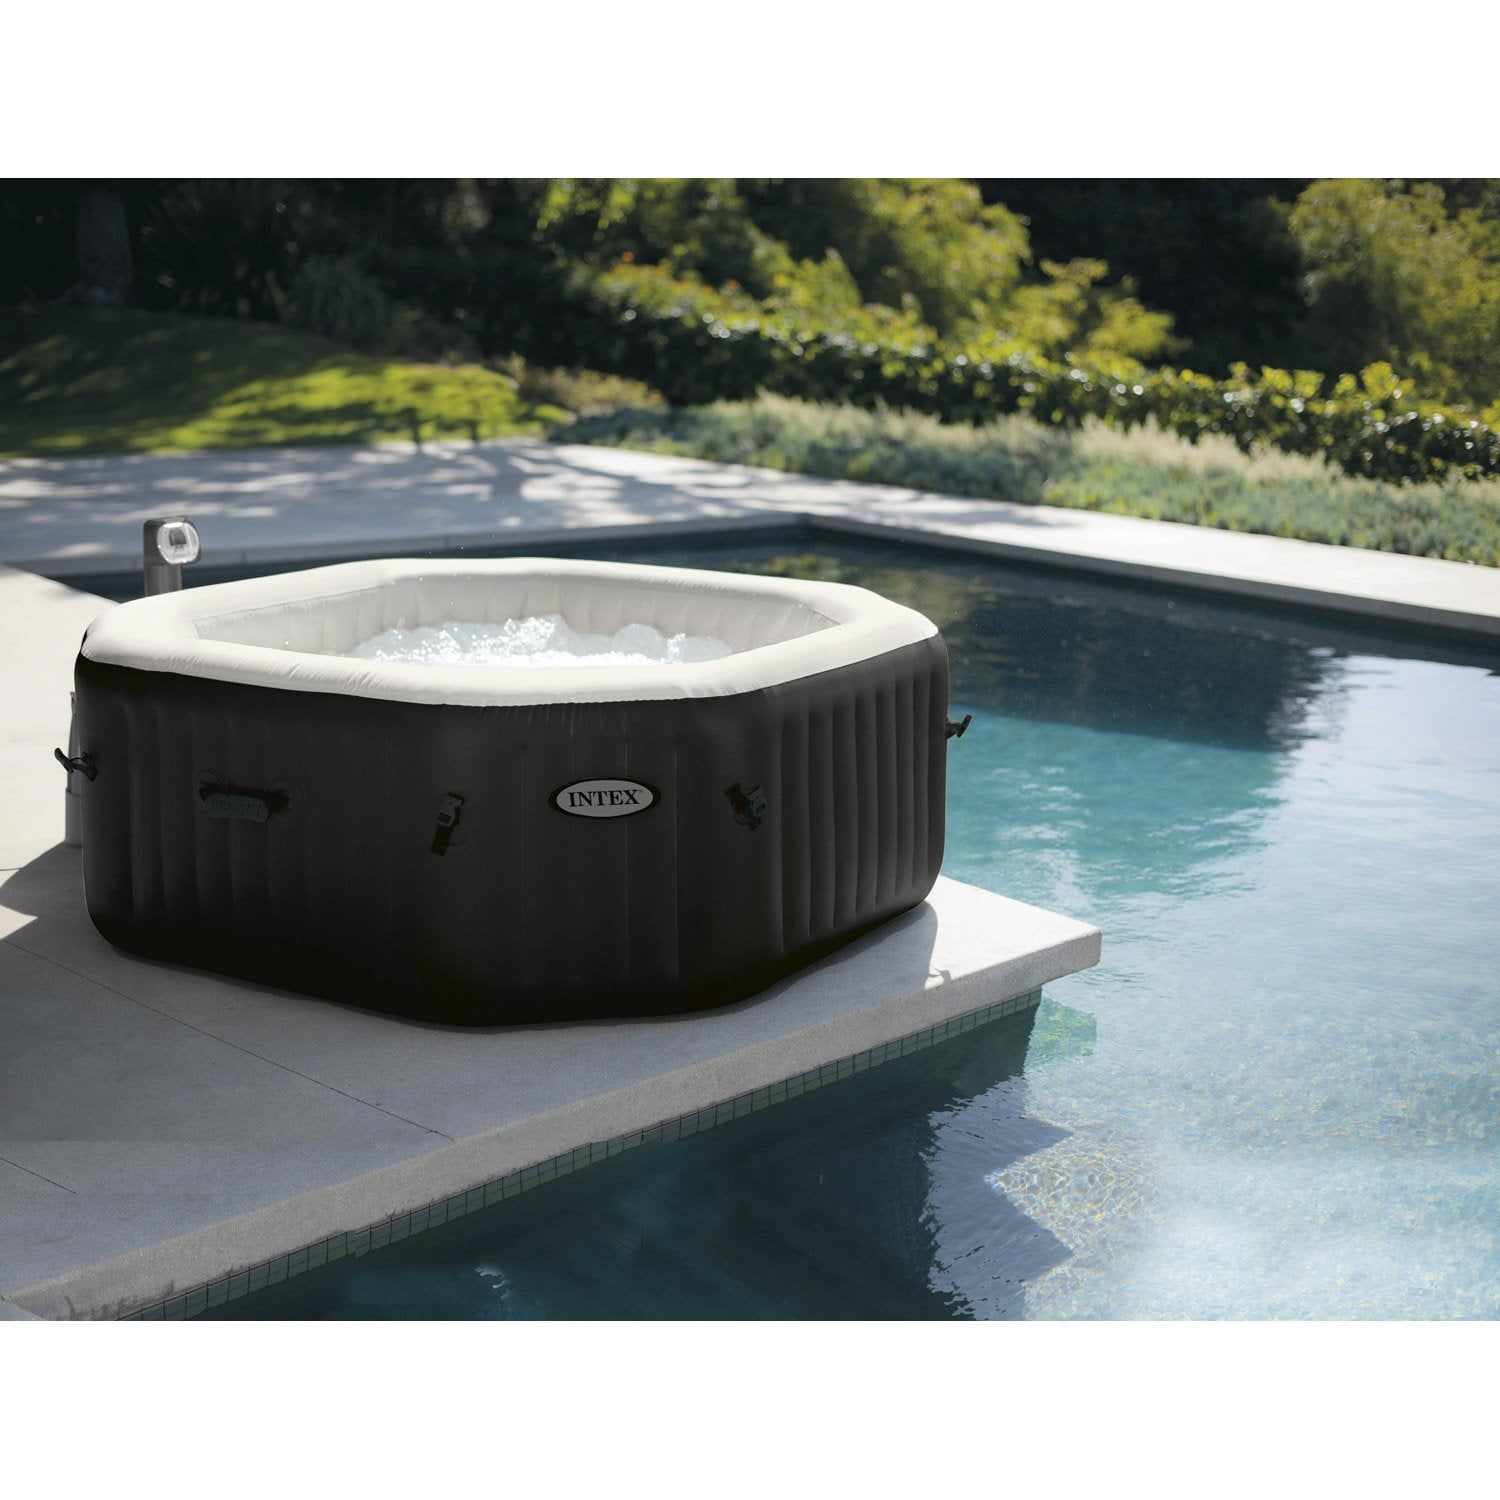 Jacuzzi 6 Places Leroy Merlin spa gonflable intex pure spa octogonale, 6 places assises